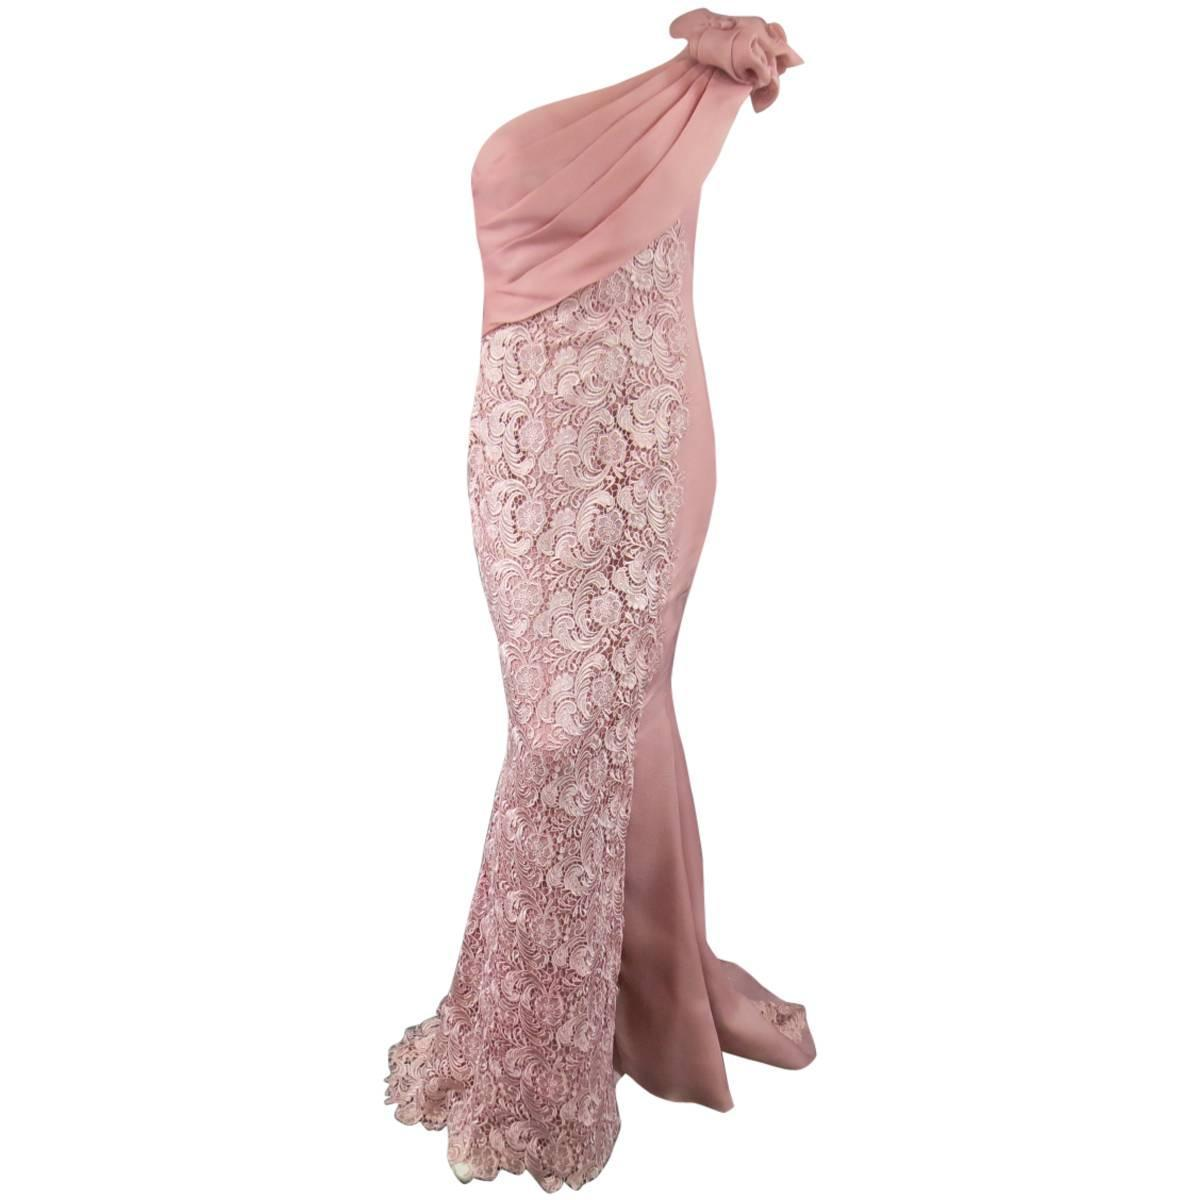 TONY WARD Dress 8 Pink Lace Ruched Shoulder Rufle Evening Gown ...